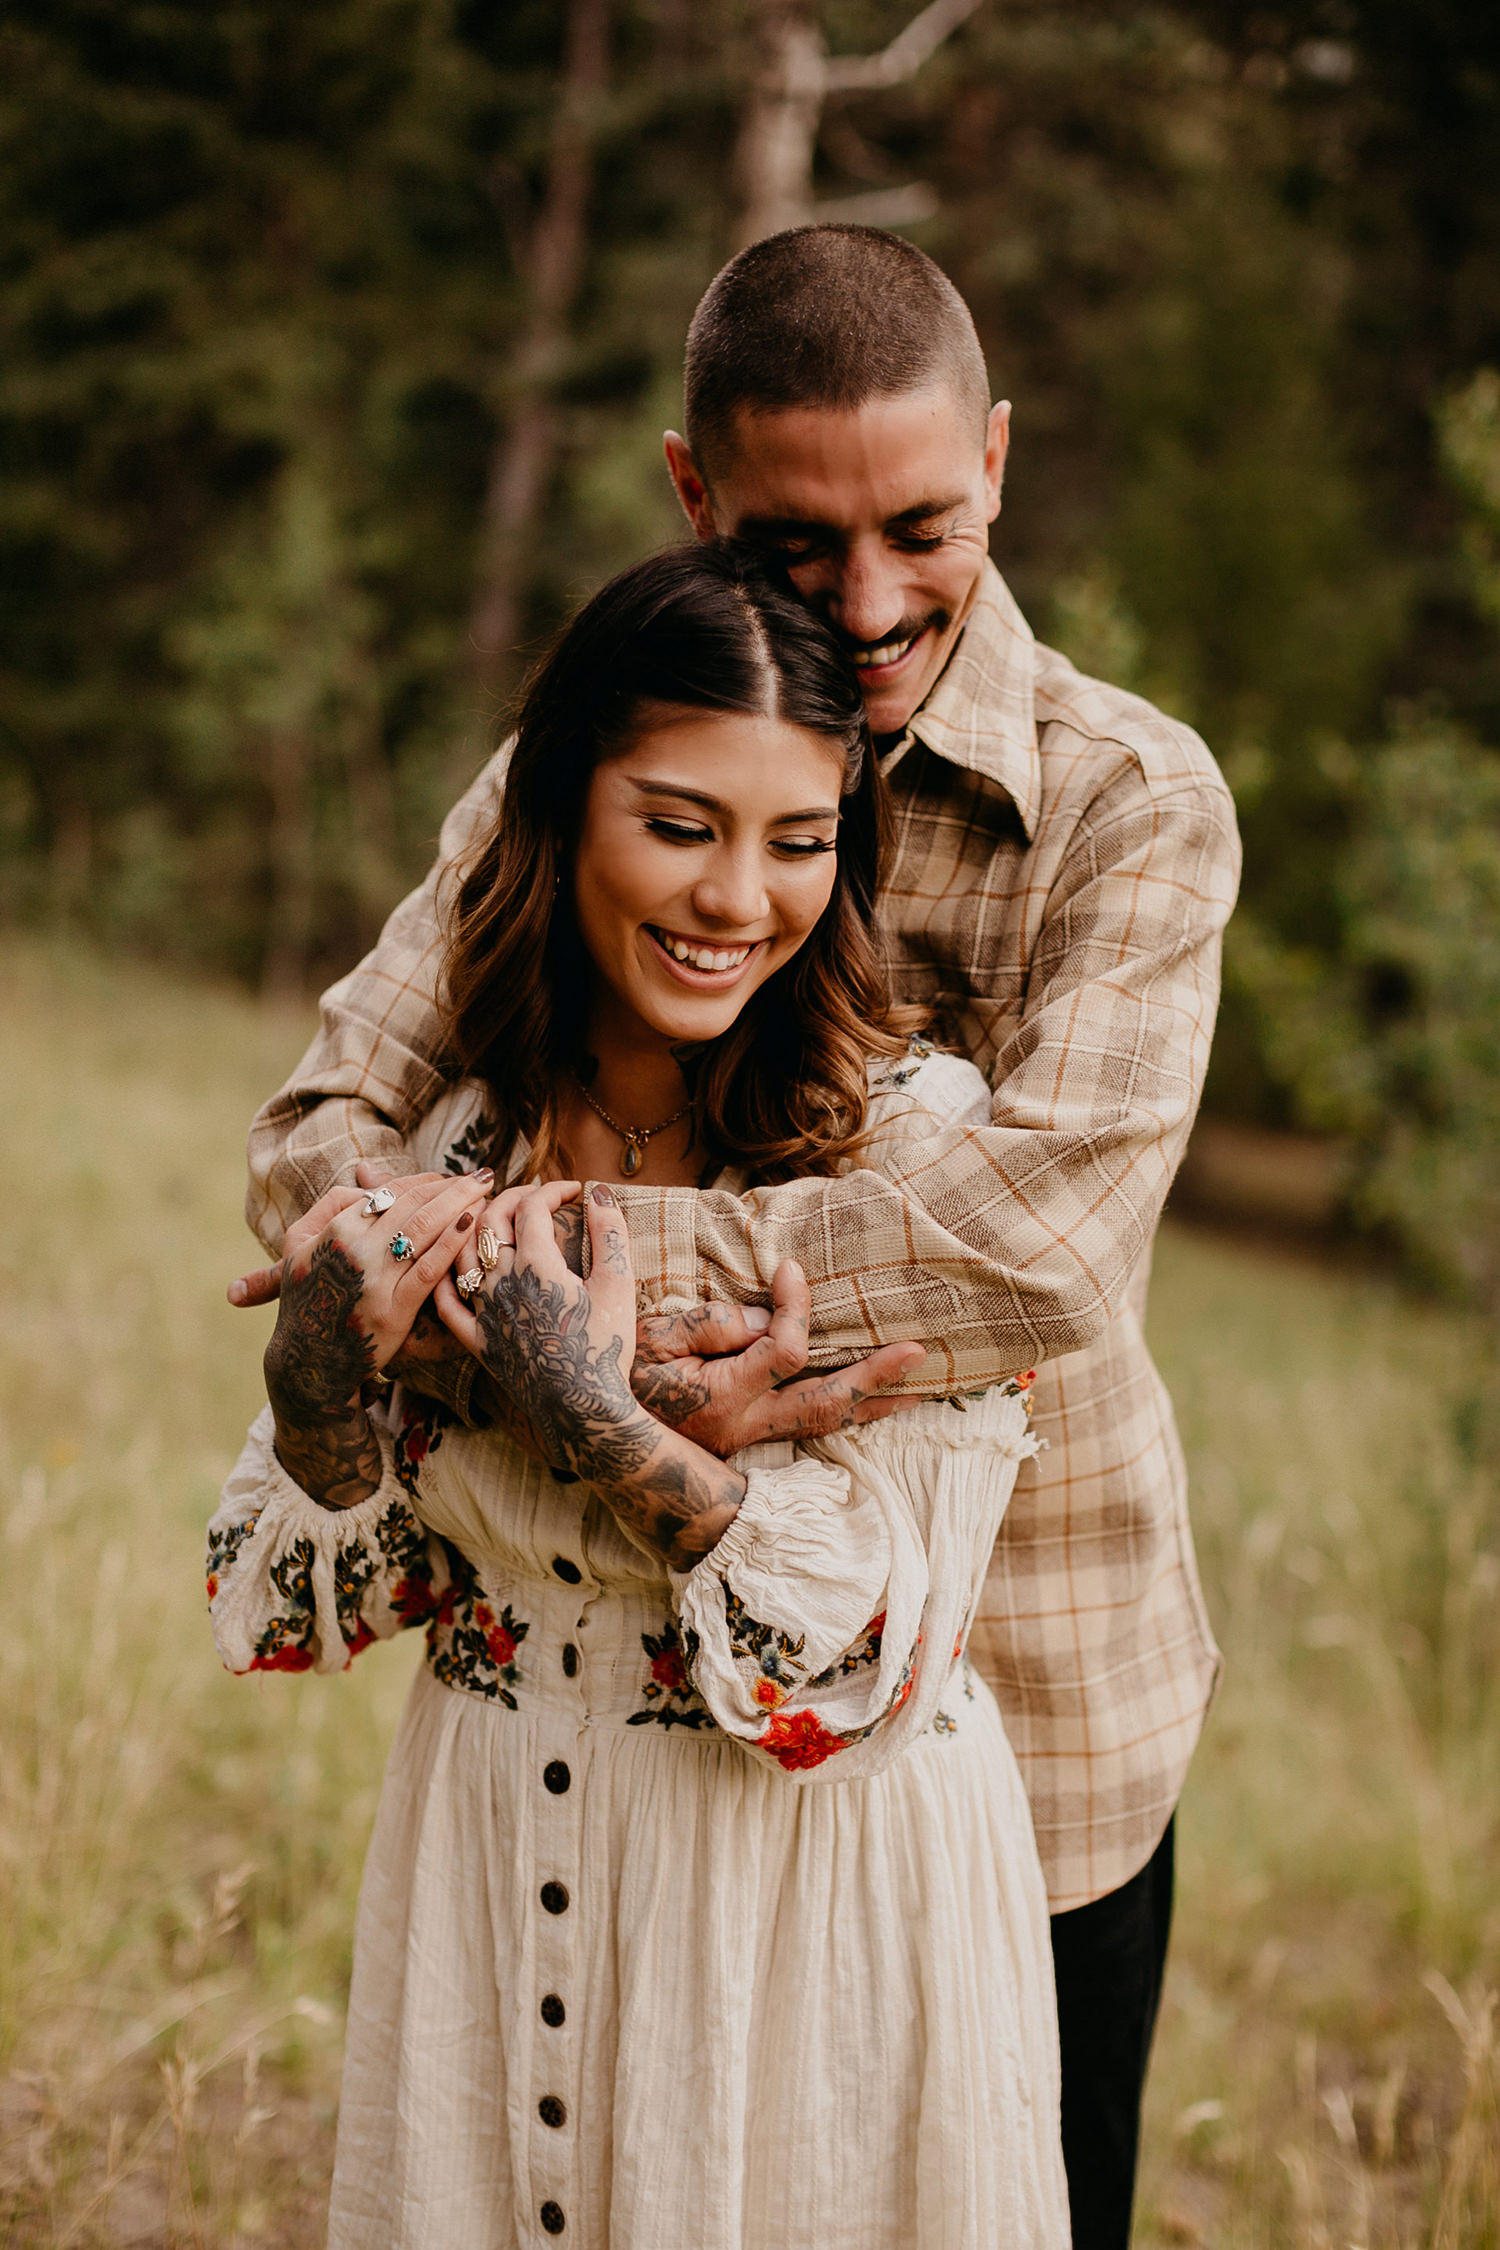 Bailey Colorado Denver Wedding Engagement Photographer Liz Osban Cheyenne Wyoming Mountain Elopement Boho bohemian vintage film tattoo non traditional tattooed rock and roll 16.jpg